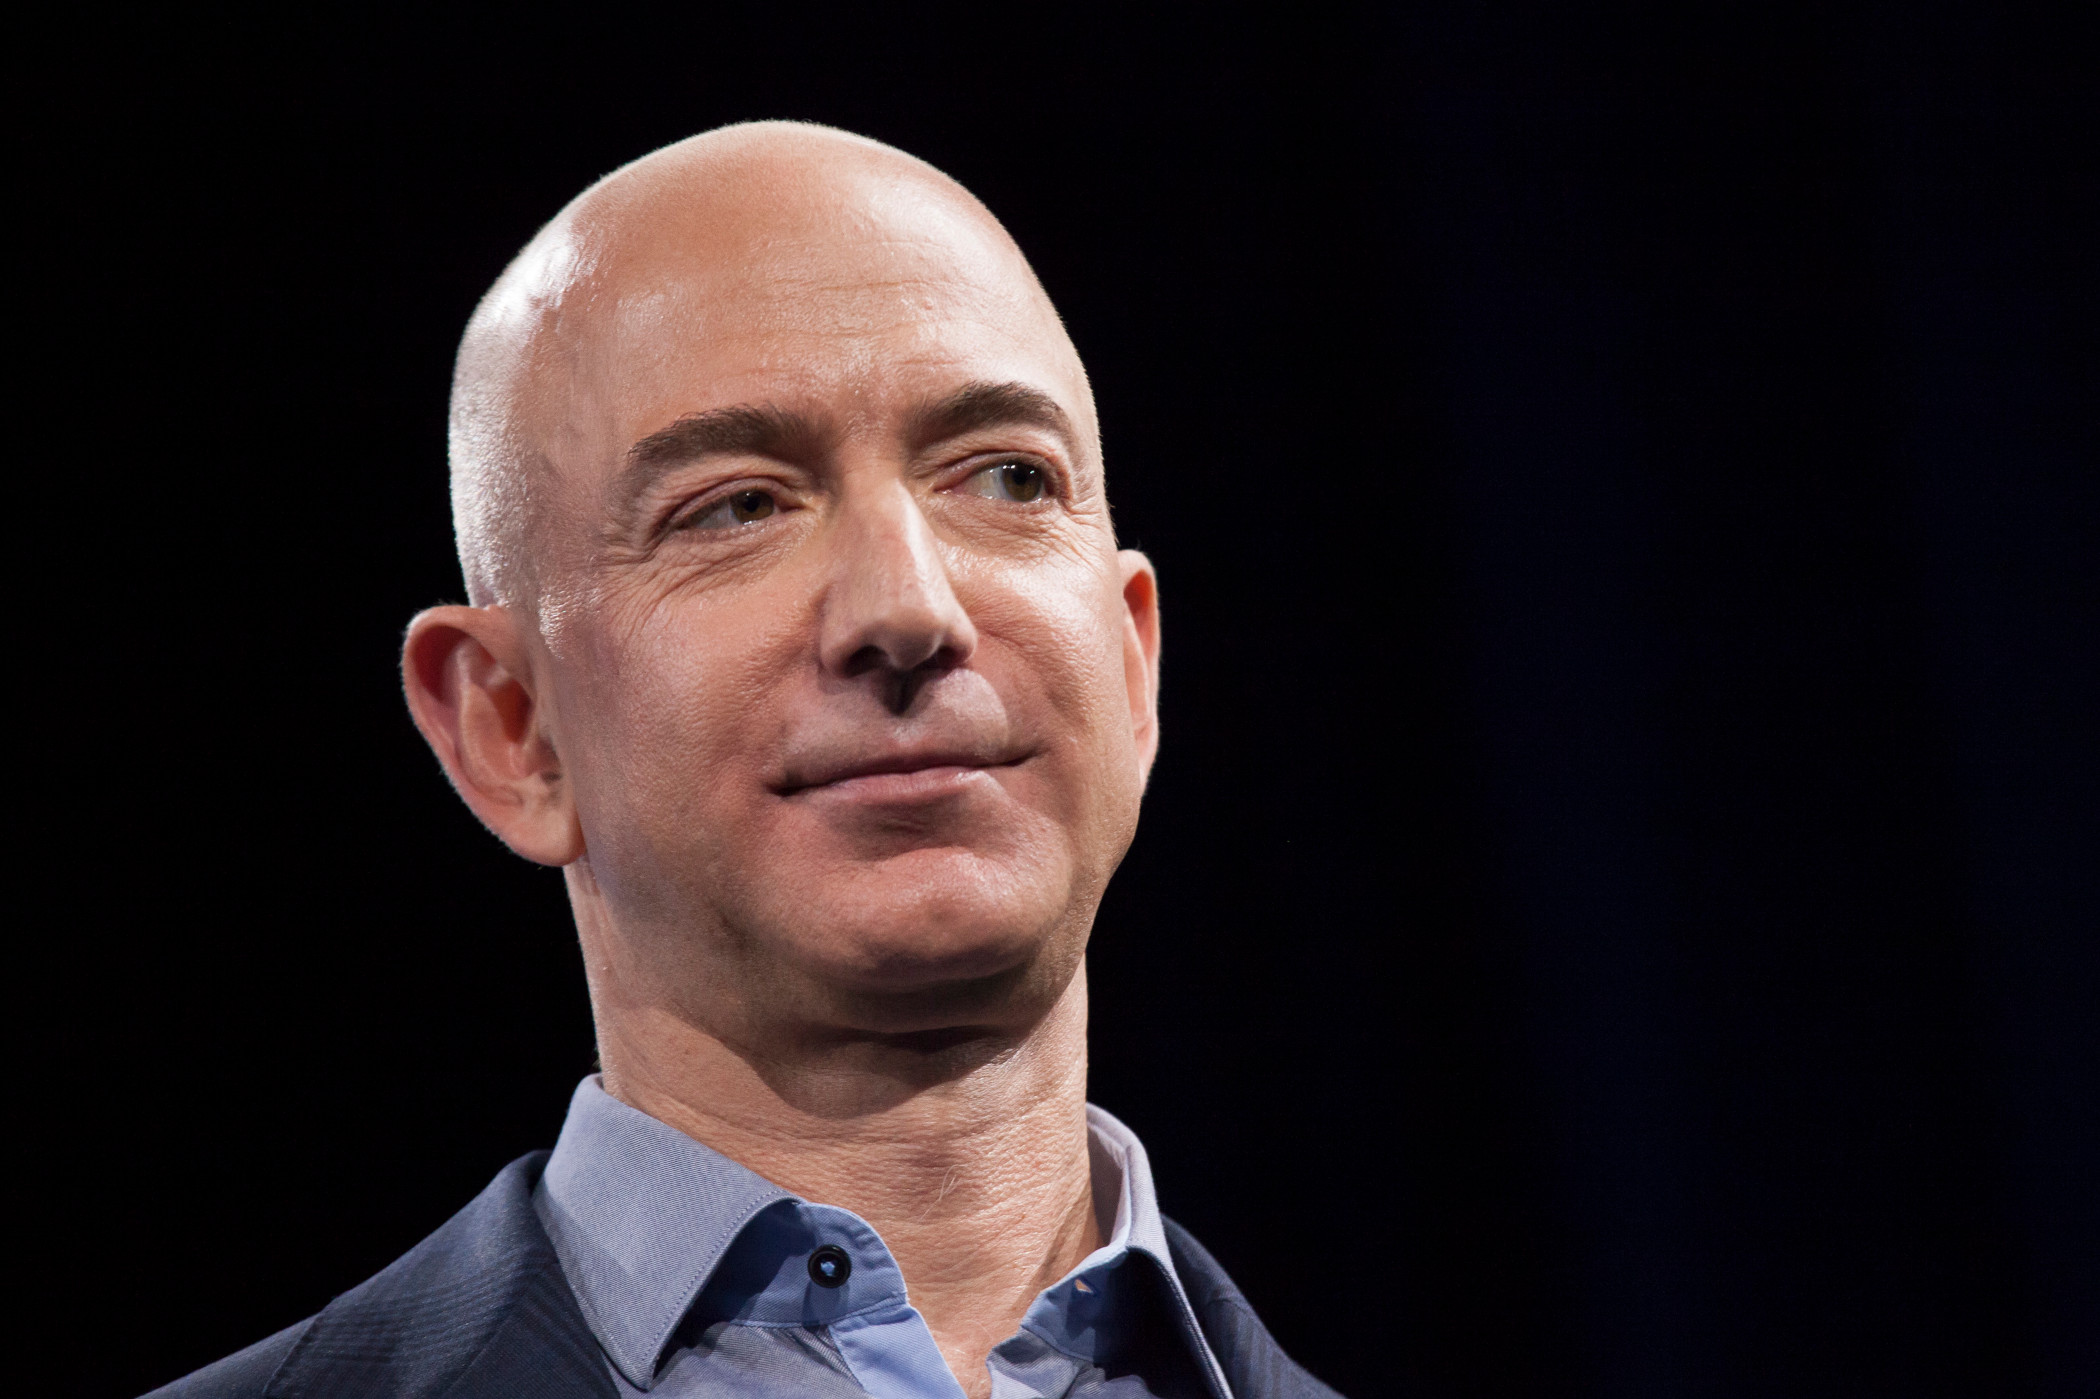 Amazon founder Jeff Bezos officially shifted from CEO to executive chairman. (Getty Images)